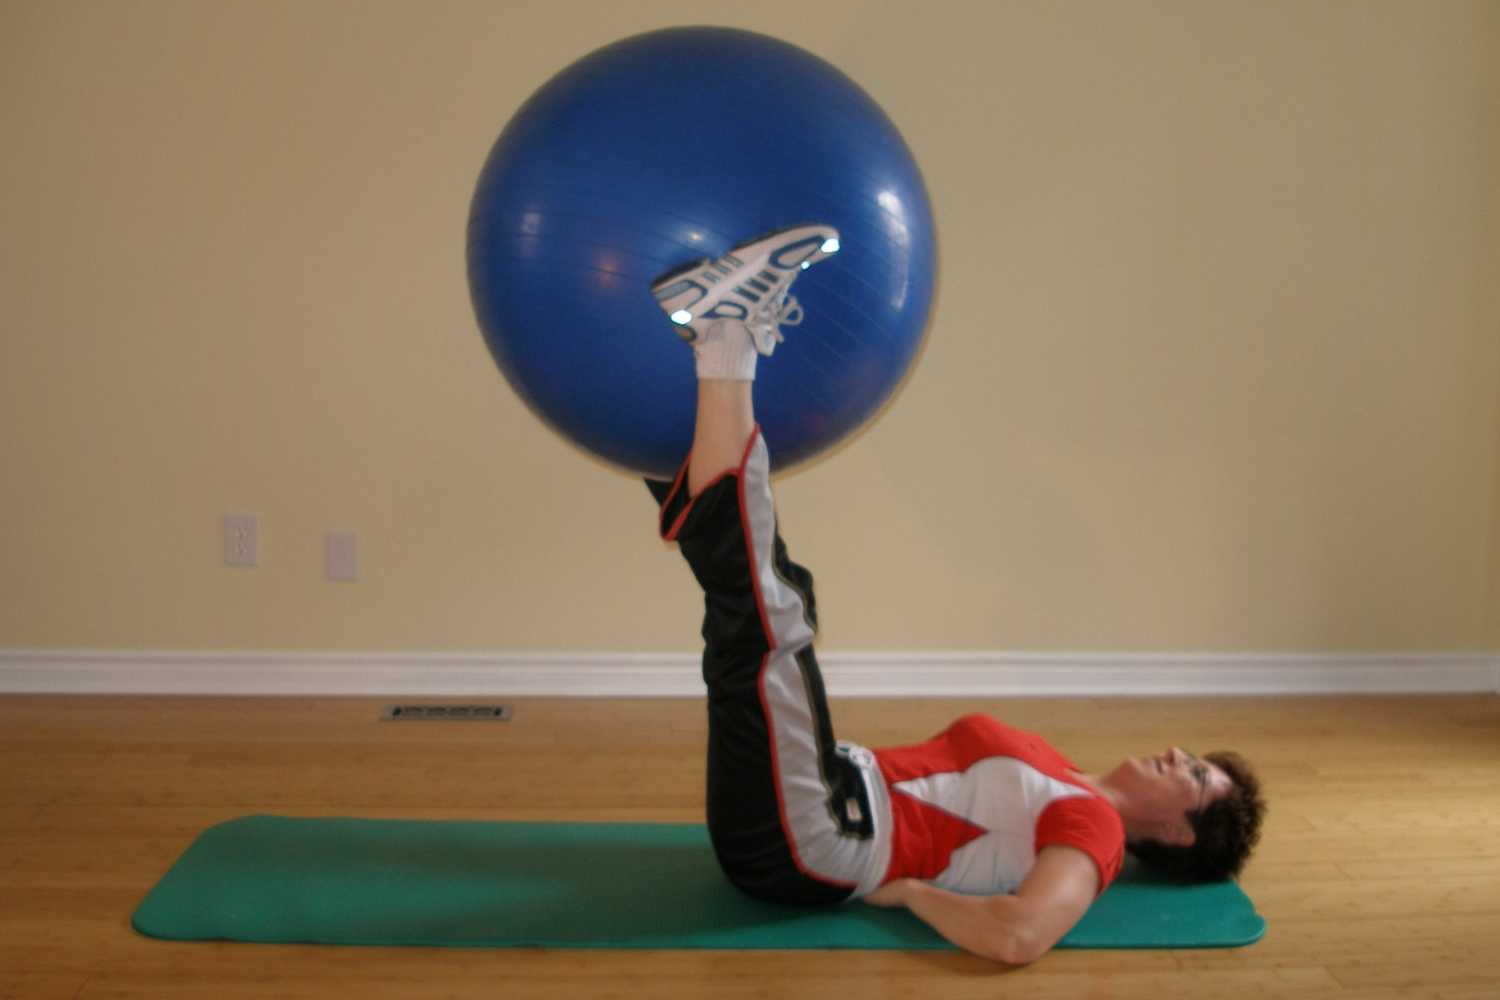 knee extension ball exercise starting position